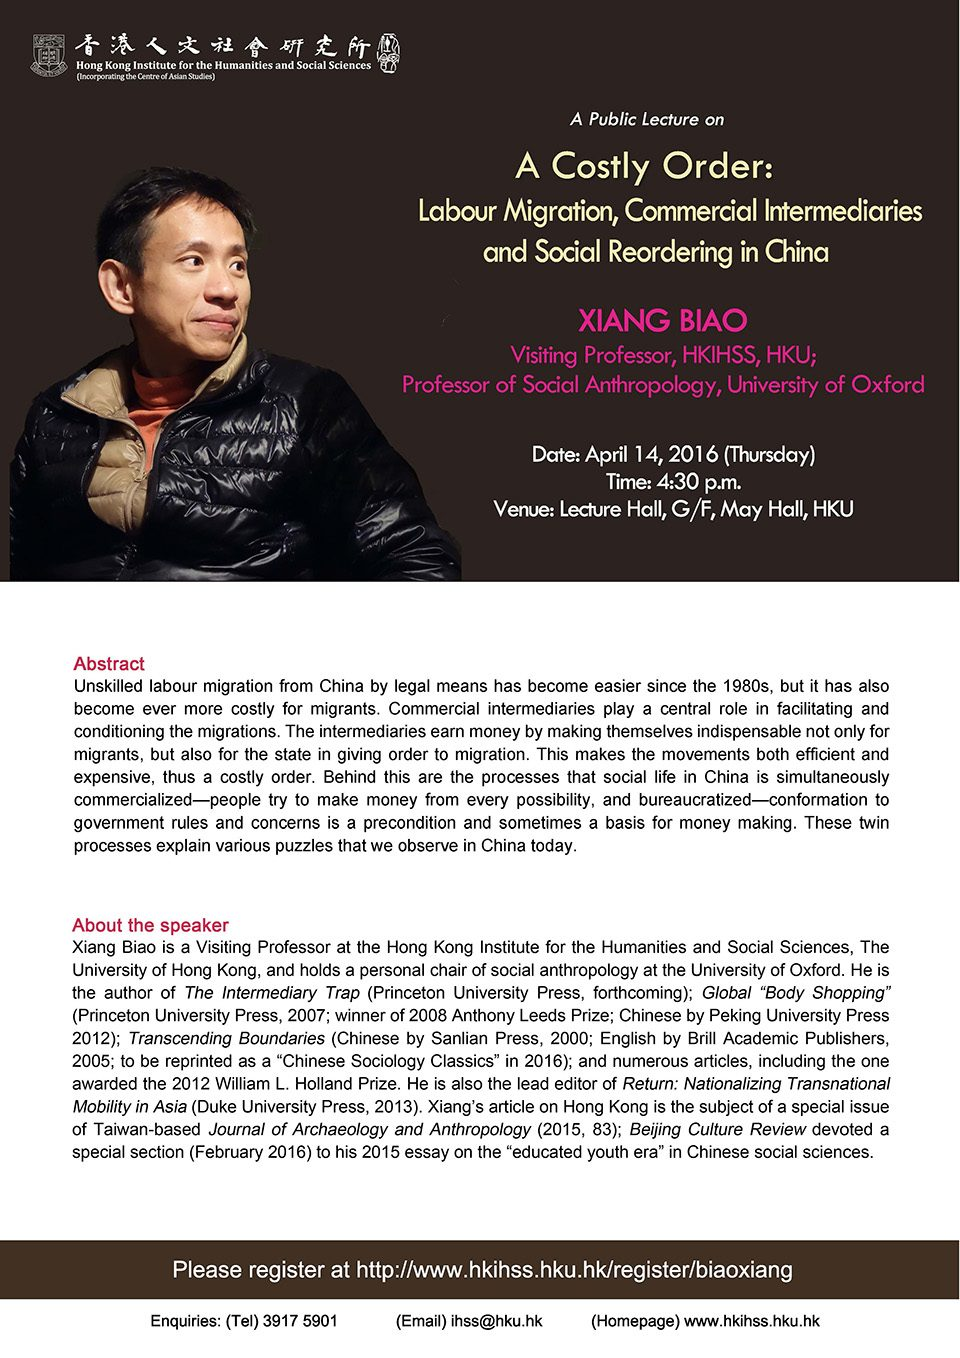 """Public Lecture on """"A Costly Order: Labour Migration, Commercial Intermediaries and Social Reordering in China"""" by Professor Biao Xiang (April 14, 2016)"""